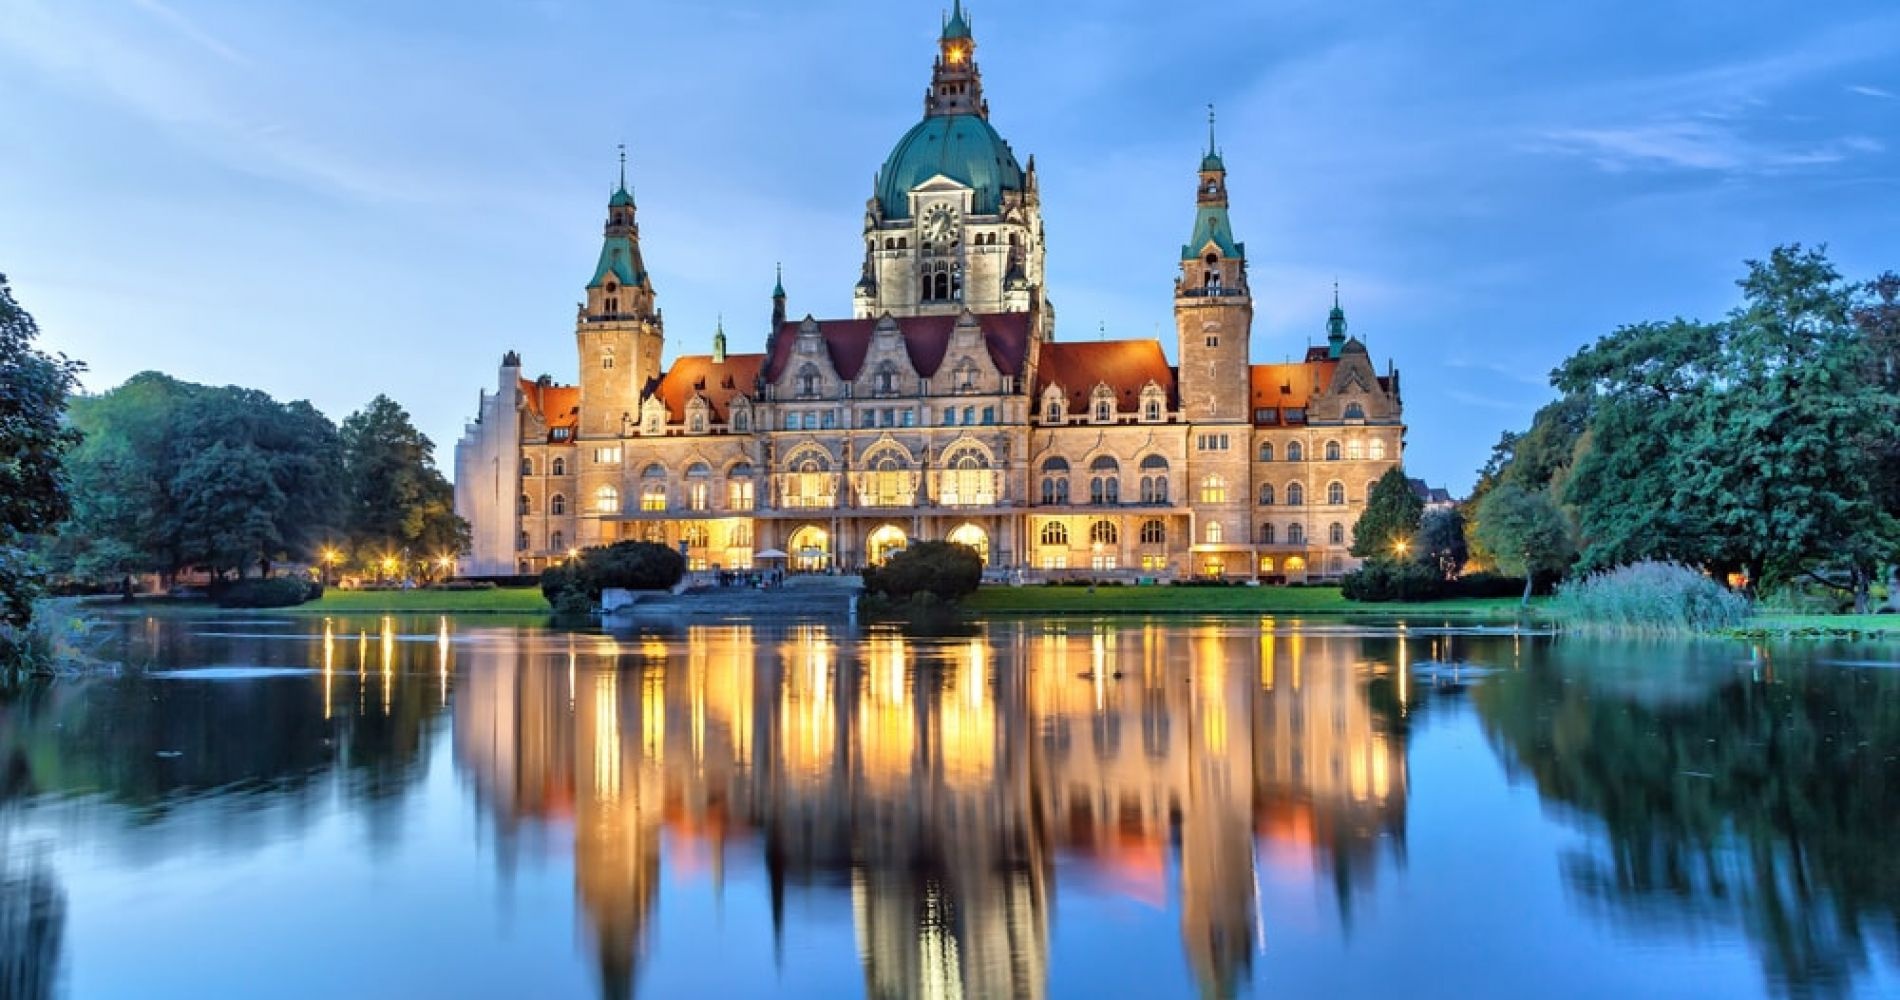 Admire The New Town Hall in Hannover